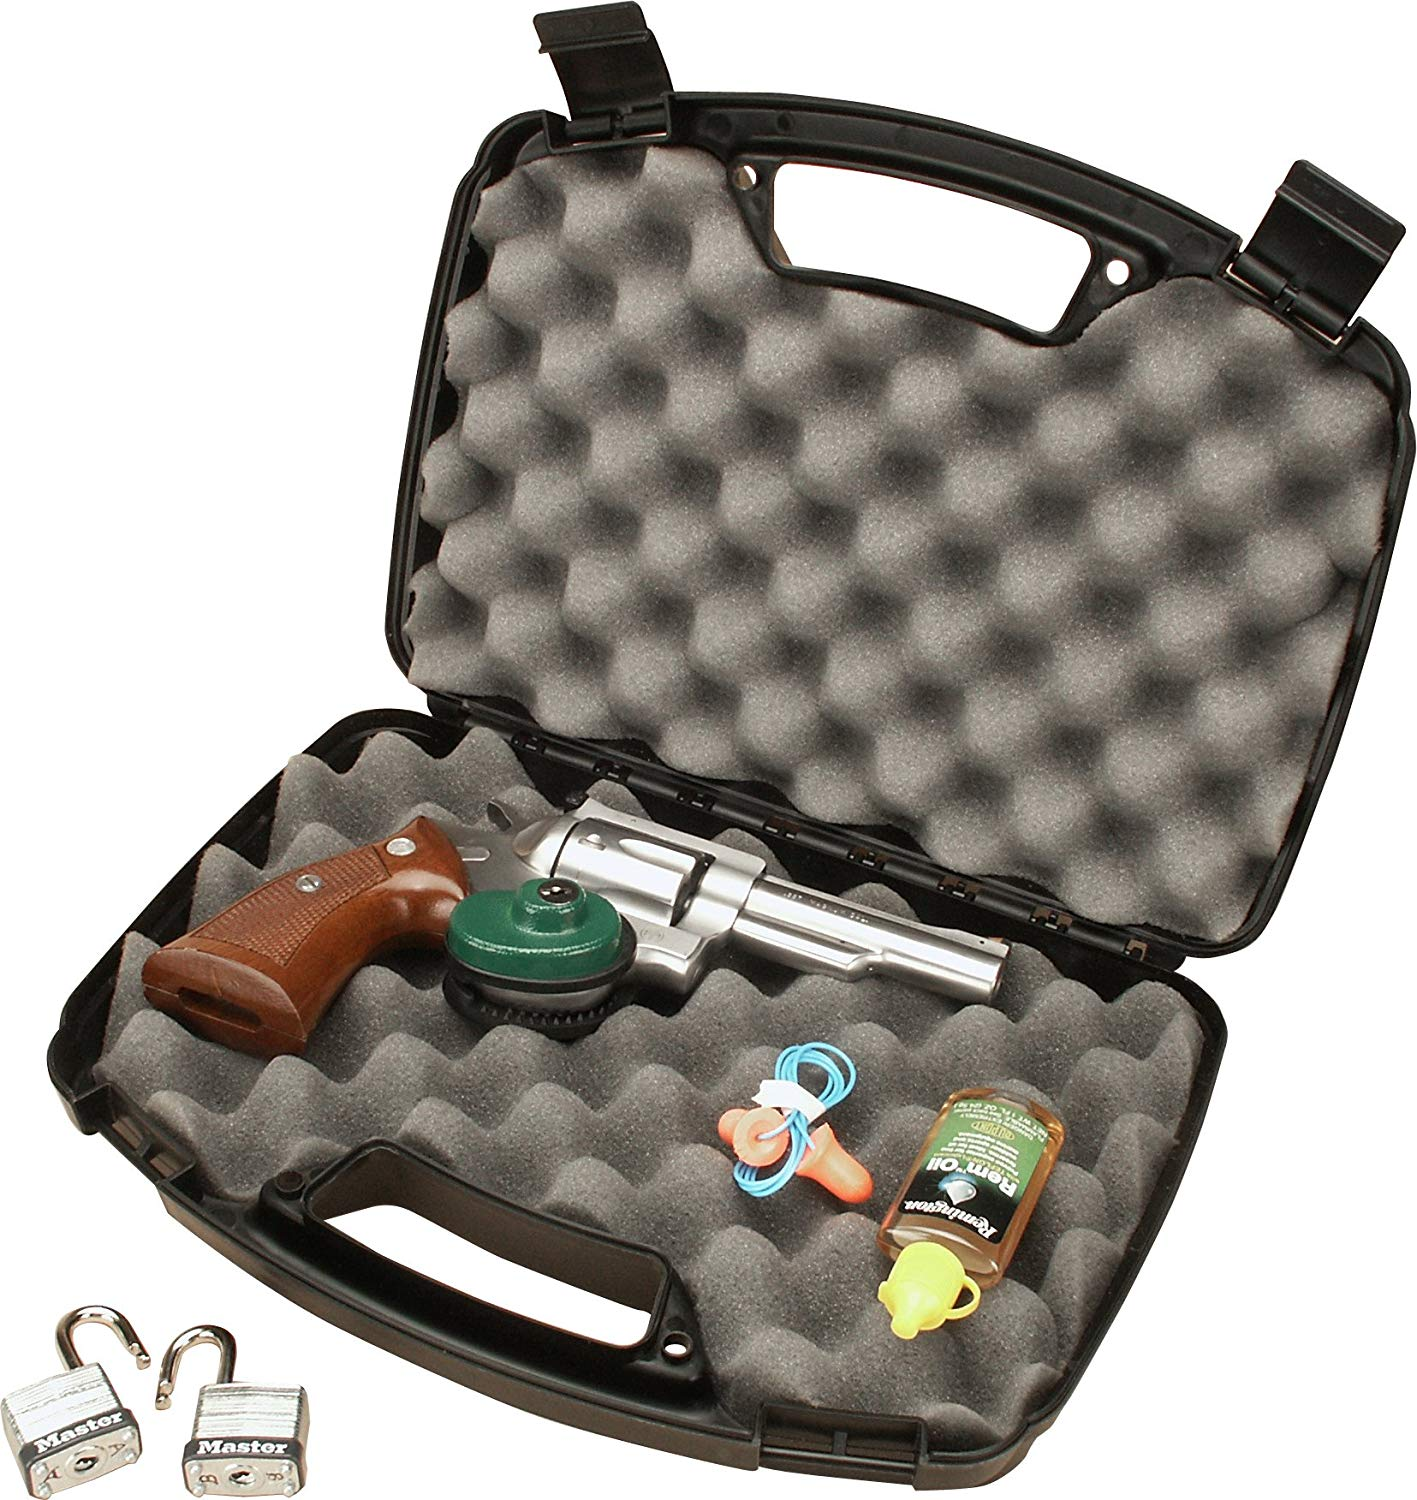 MTM Case-Gard Hard Pistol Cases